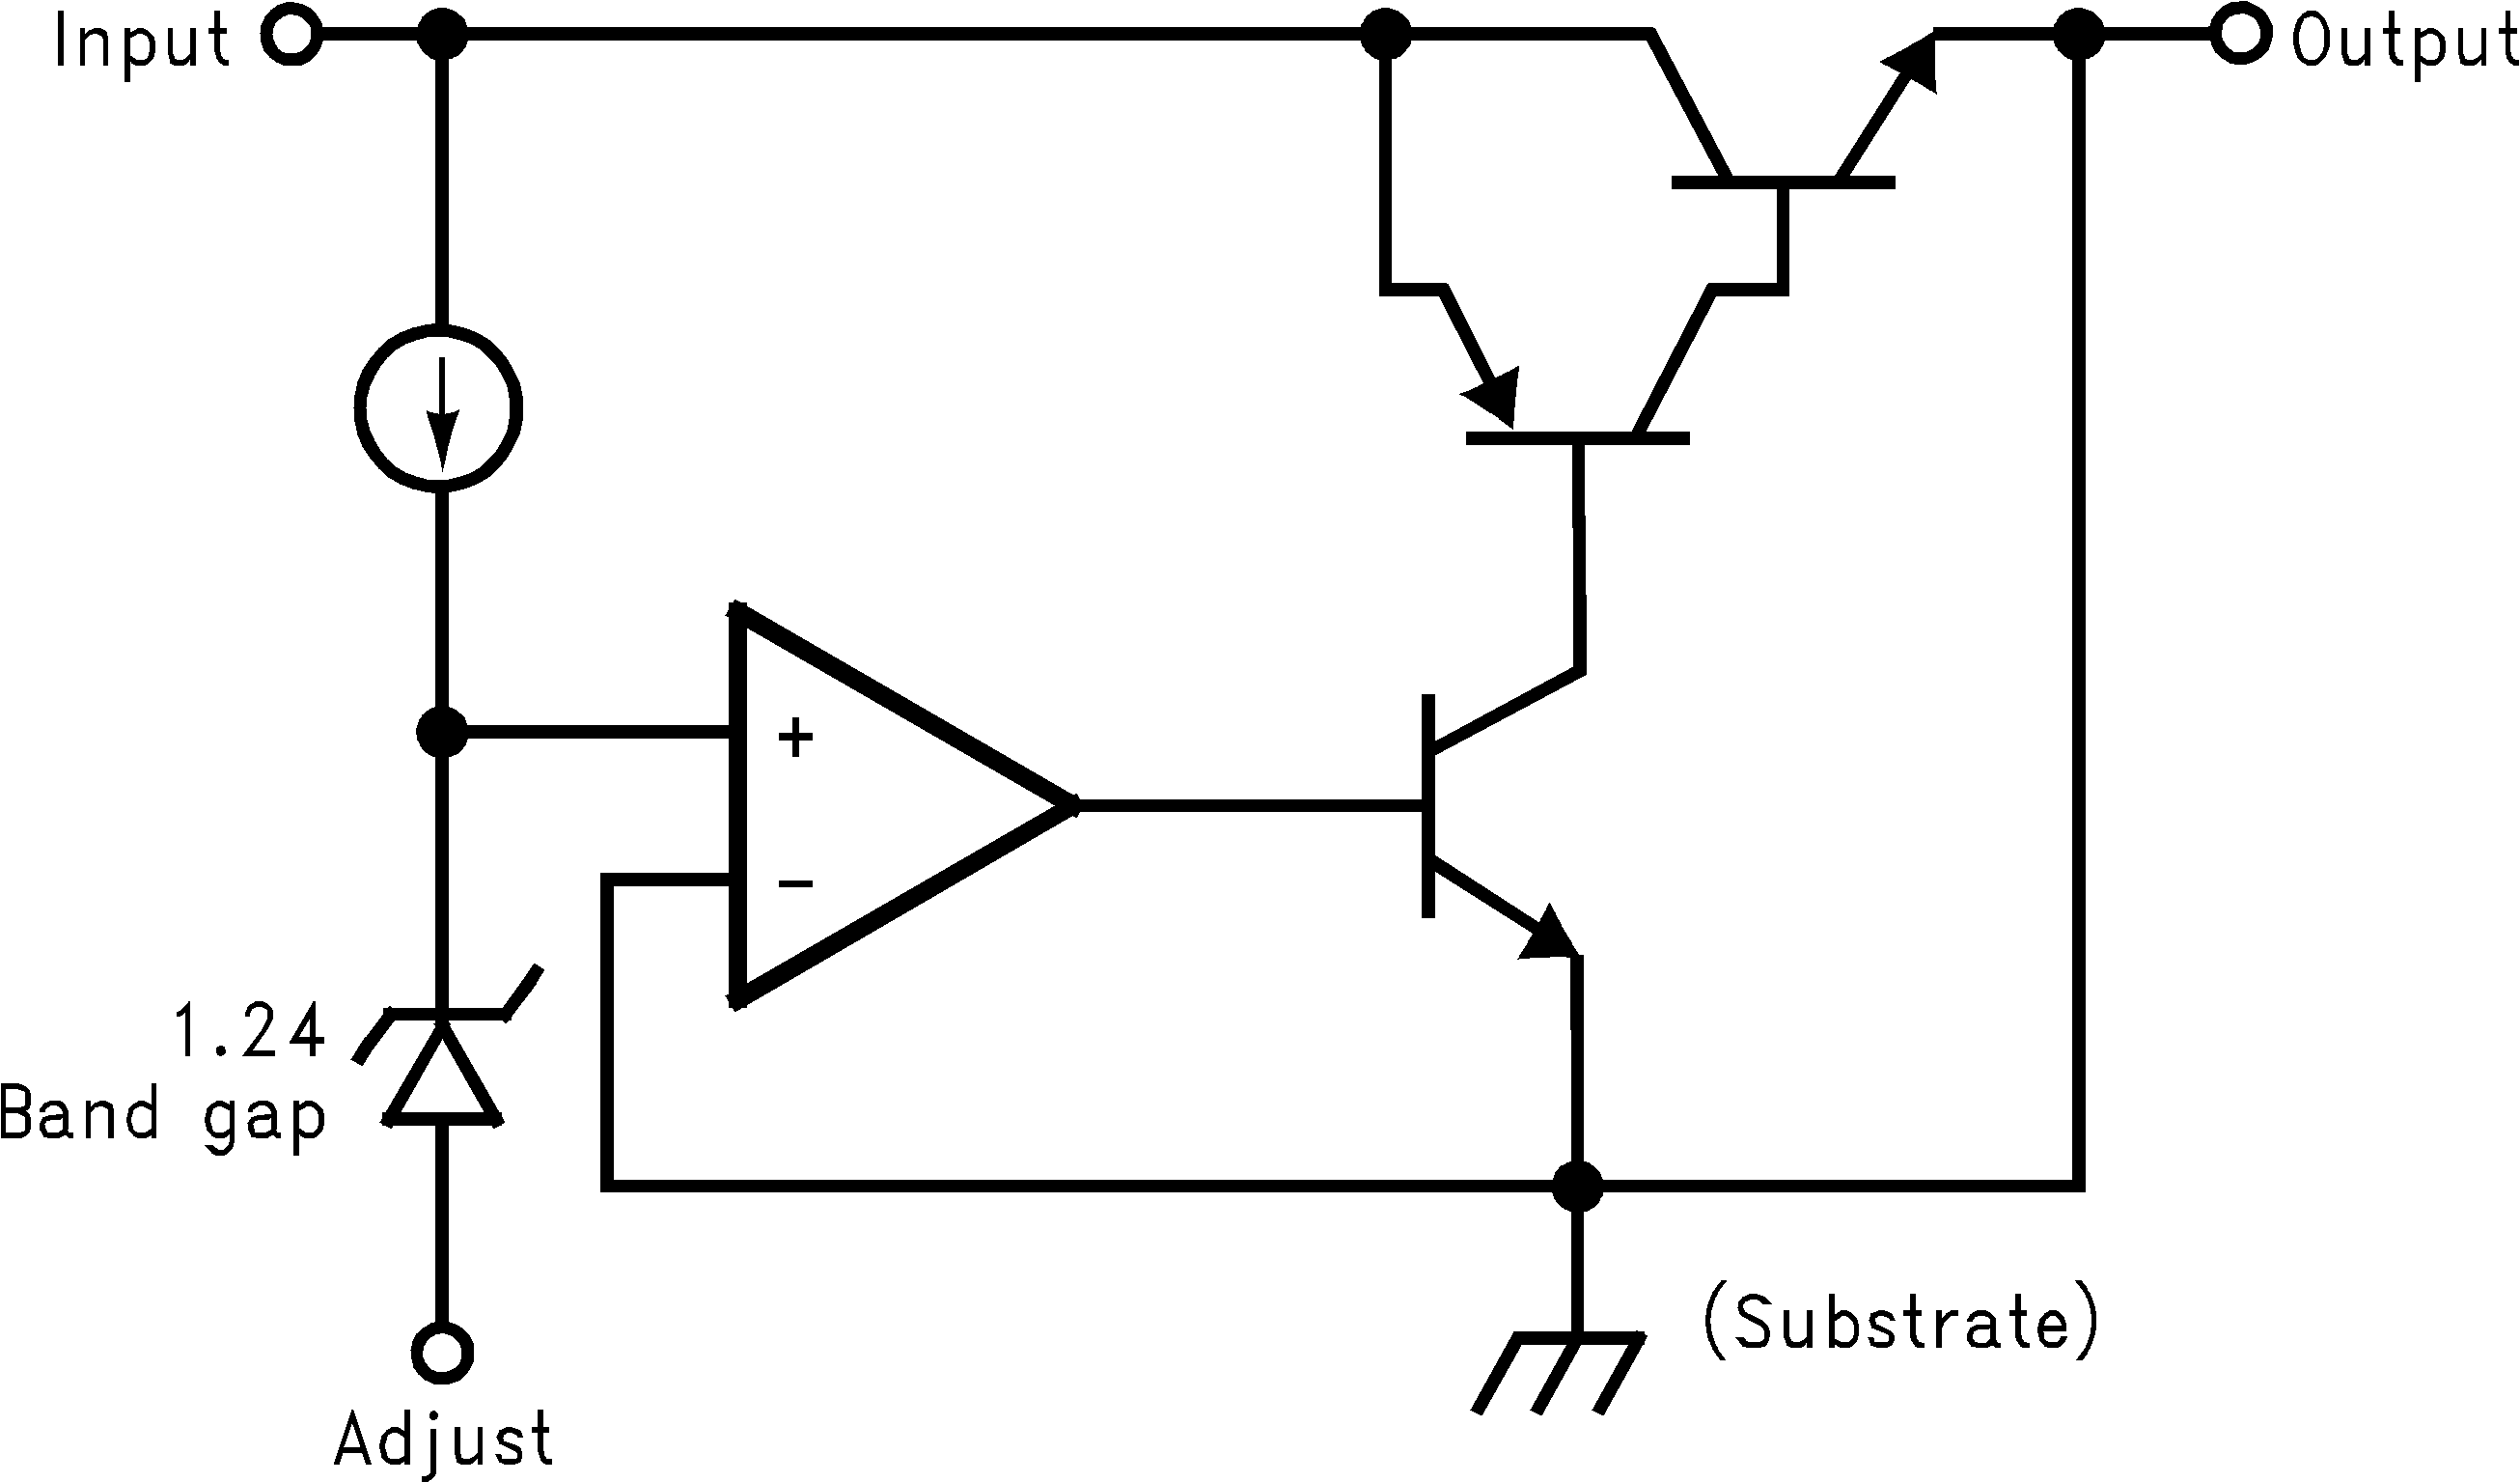 Lm1085 Low Ripple Regulated Power Supply Circuit Diagram 10094765